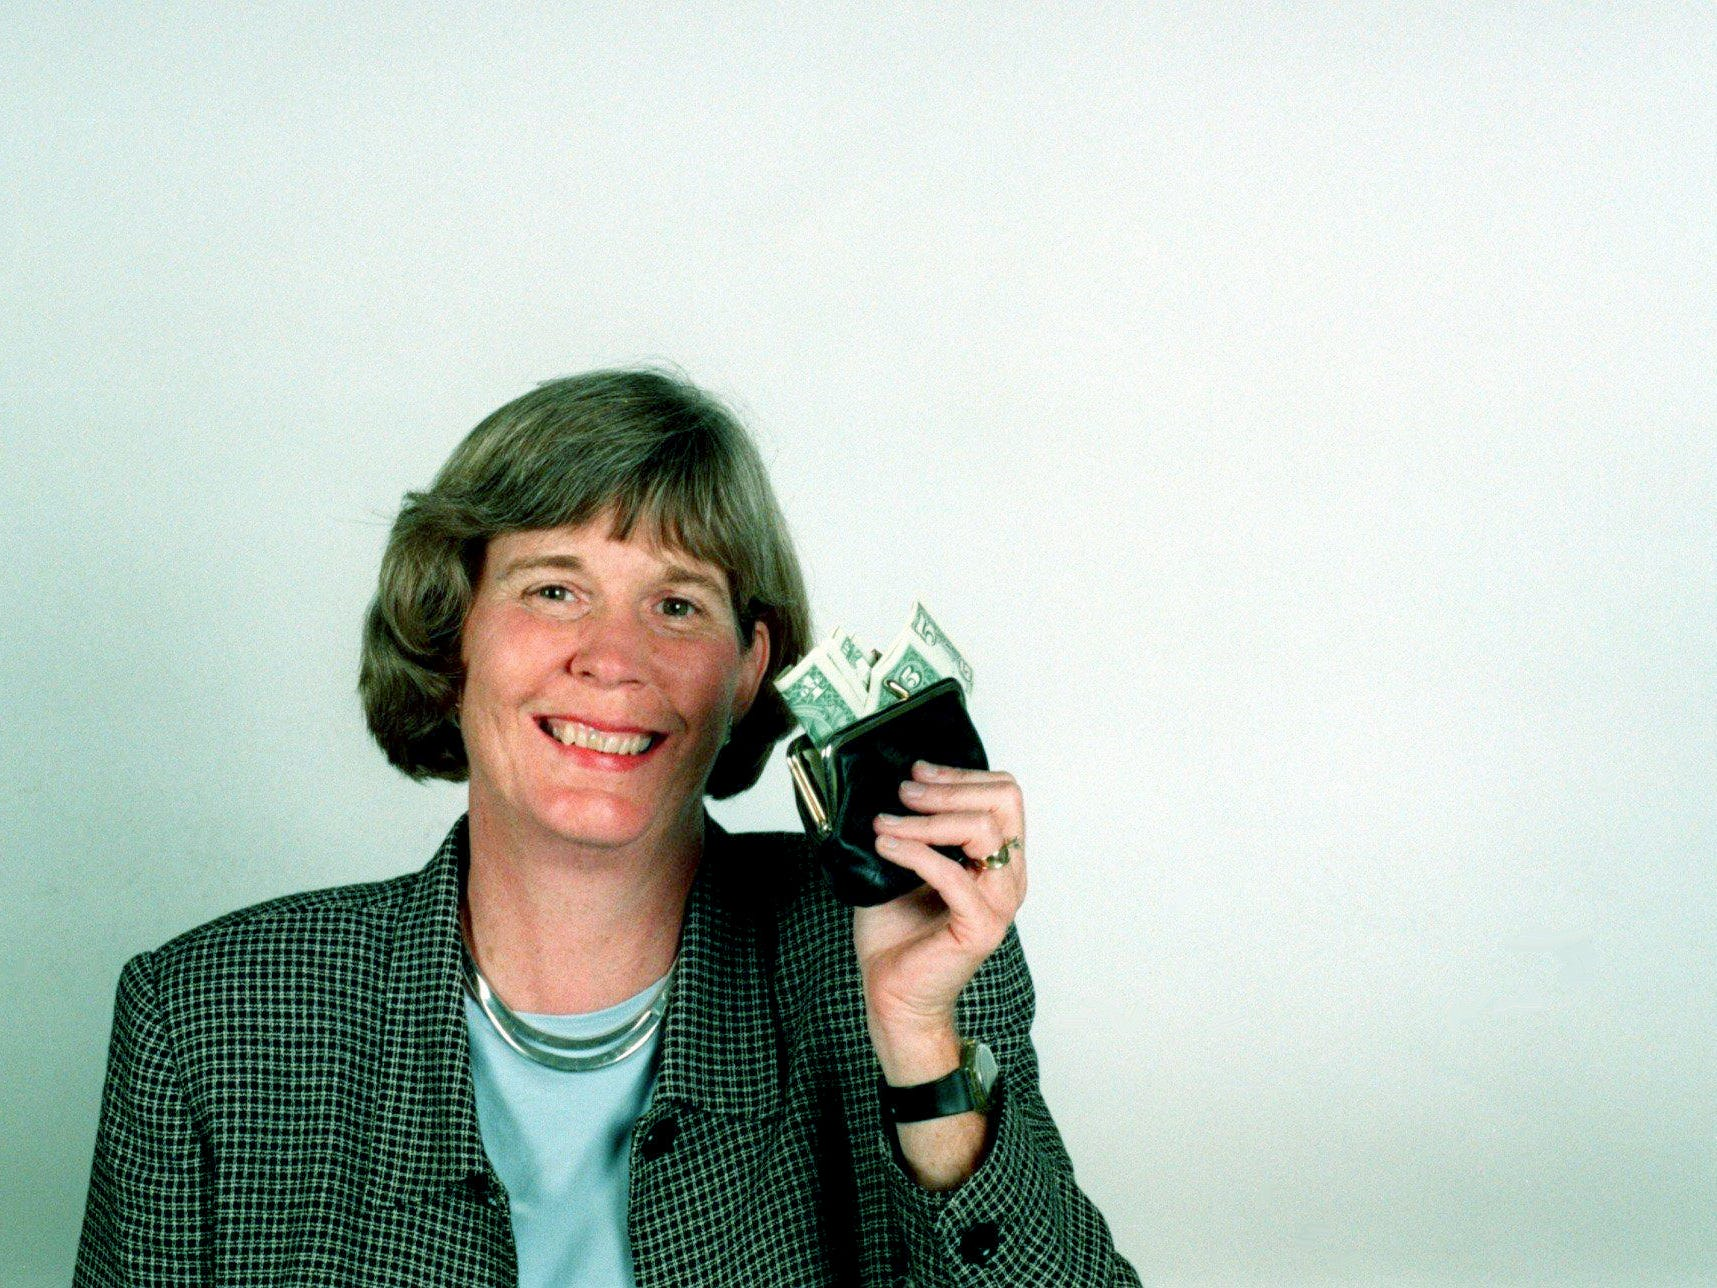 Mary Hance poses in the studio May 6, 1998, for her new Ms. Cheap column photo that will run in The Tennessean, where she moved to after the closing of the Nashville Banner.